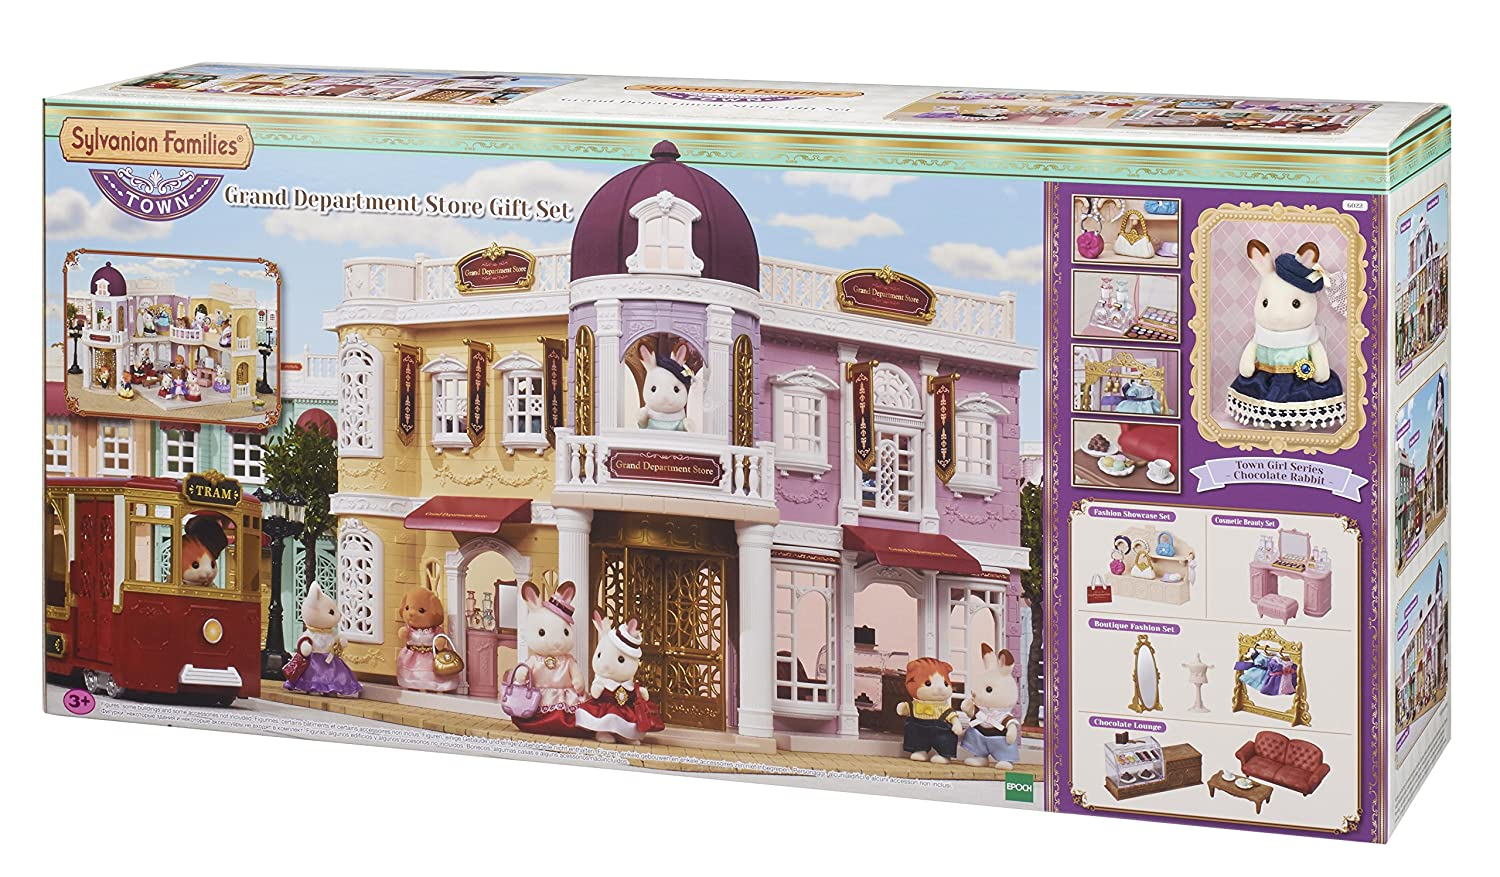 Sylvanian Families 6022 Grand Department Store Gift Playset, New Town Series